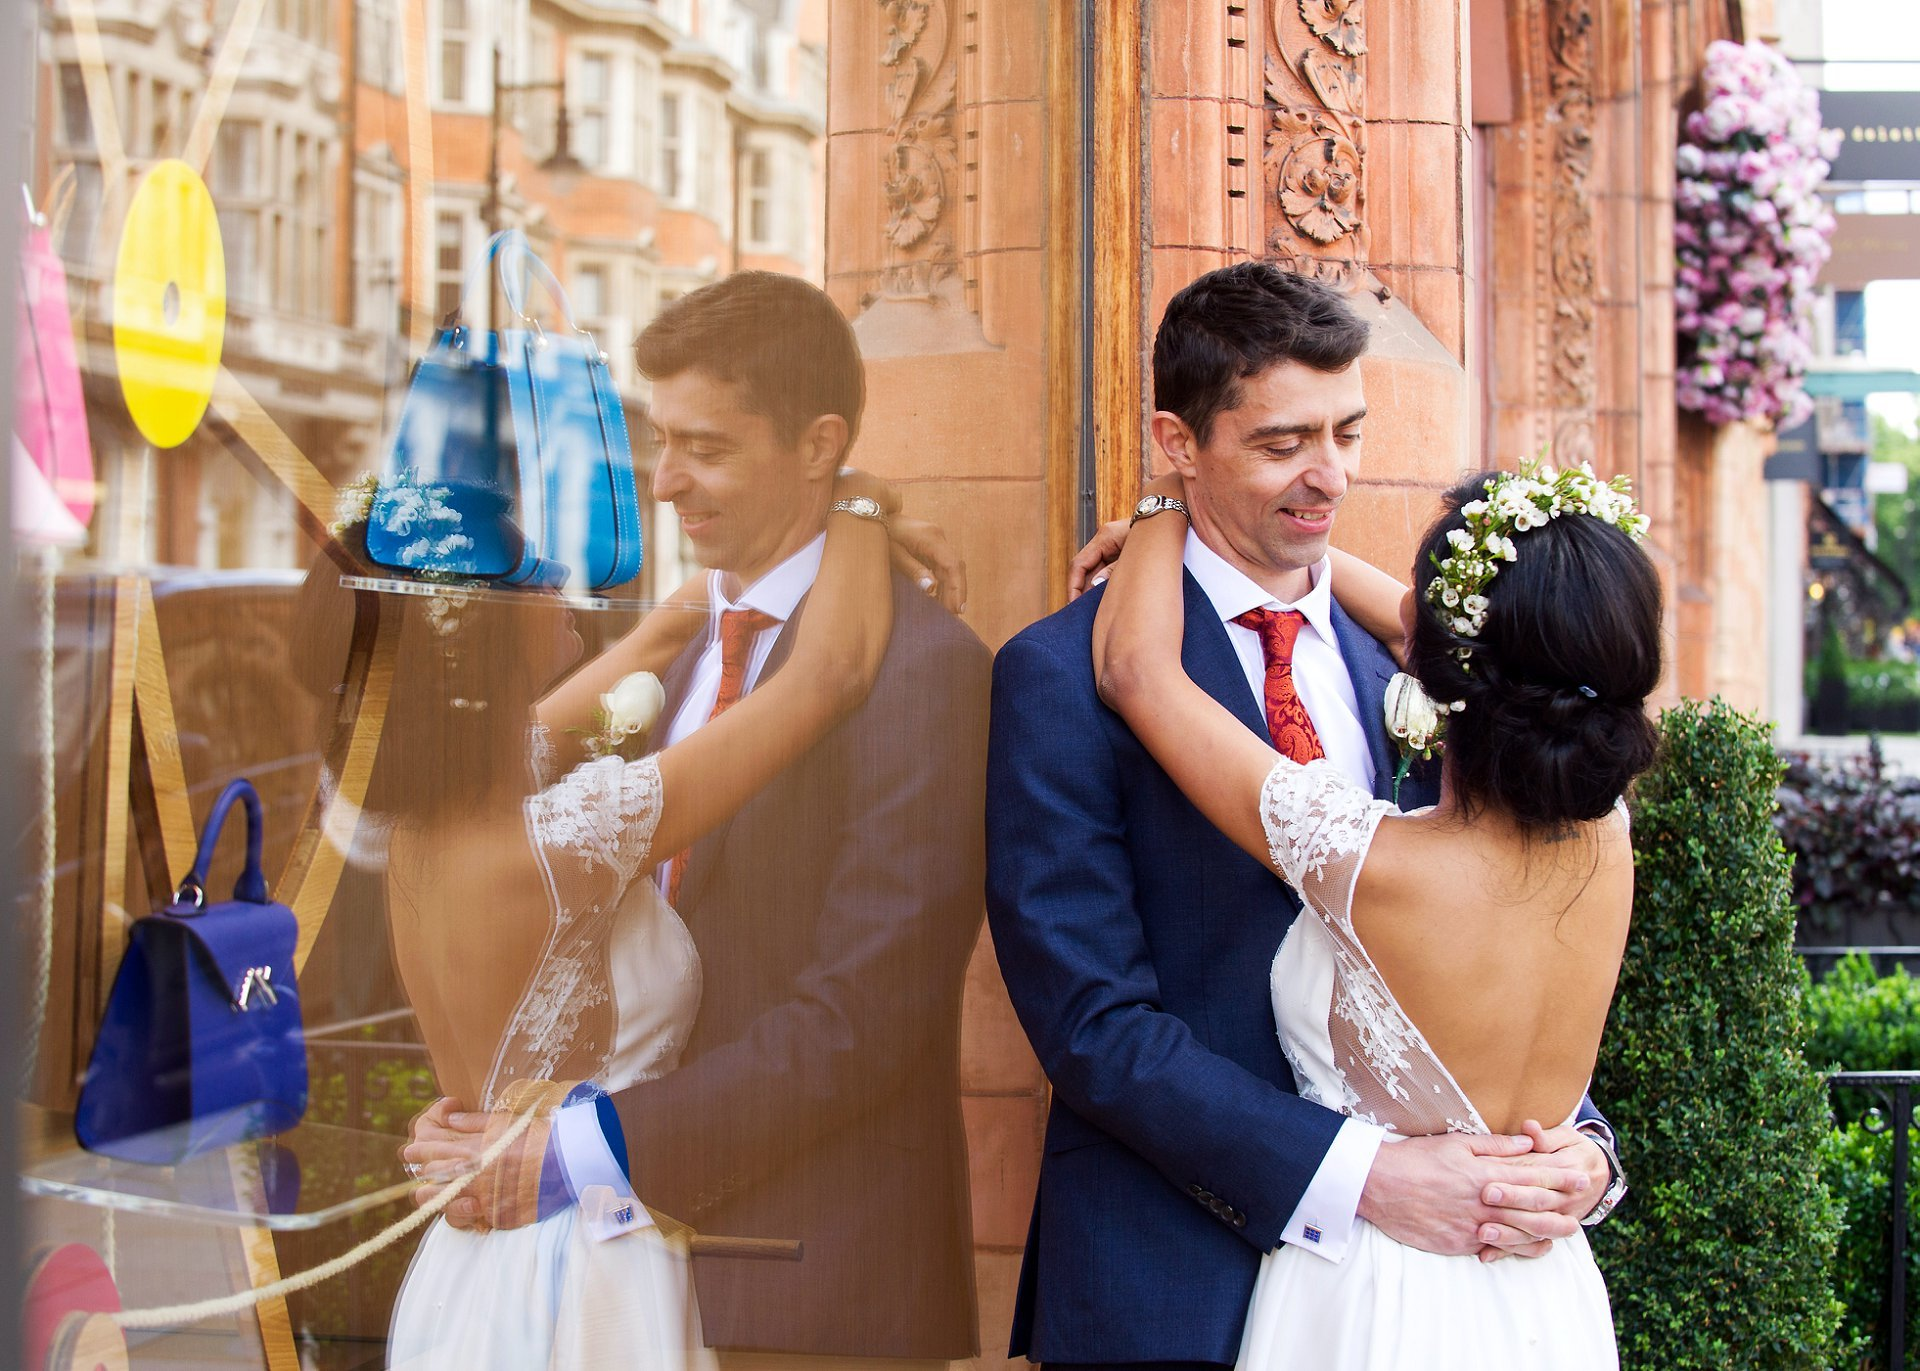 chic french wedding near old marylebone town hall